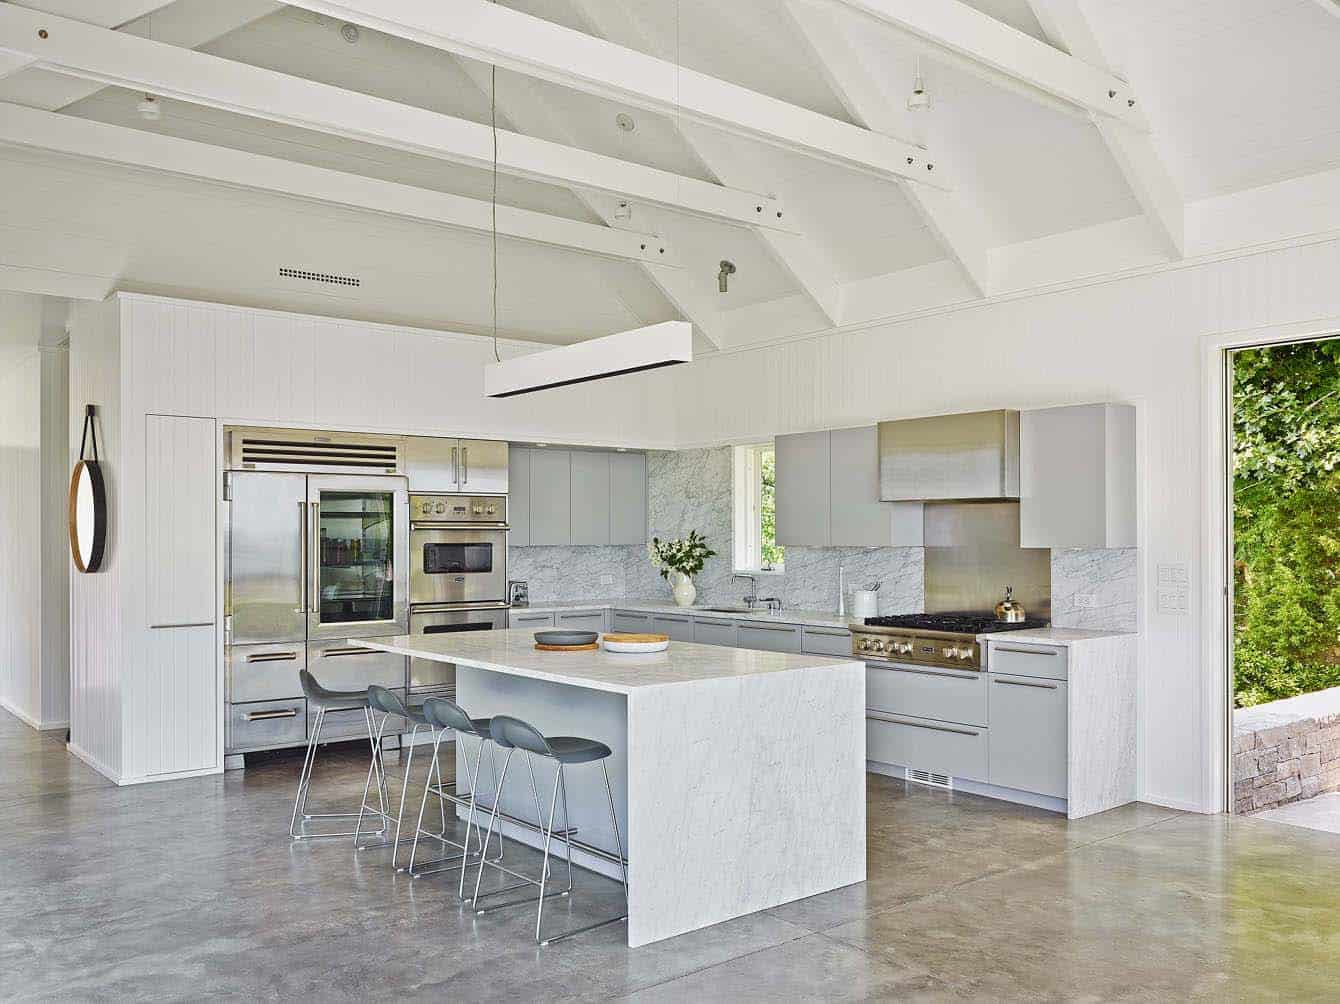 Waters Edge House-Robert Young Architects-06-1 Kindesign